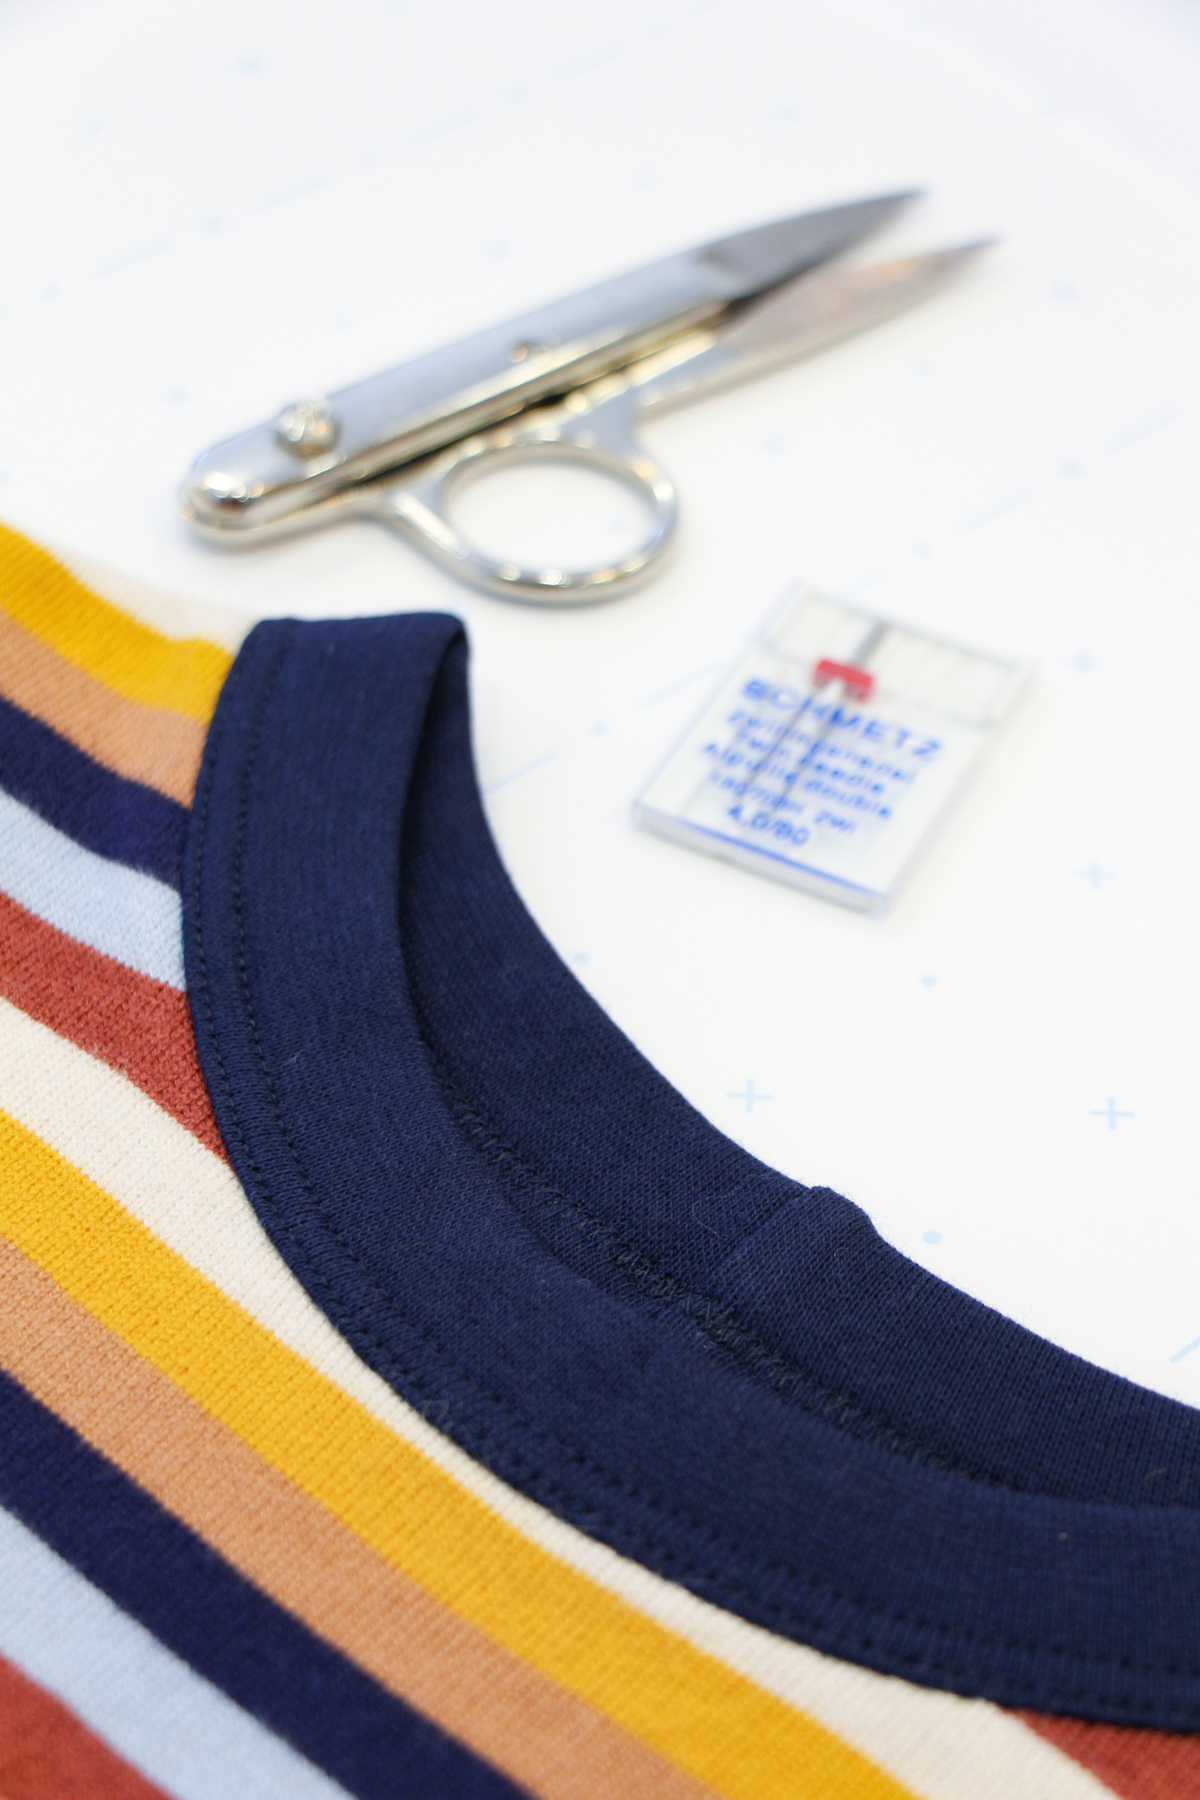 How To Make A Rowan Ringer Tee - Top Stitch Around Your Bind